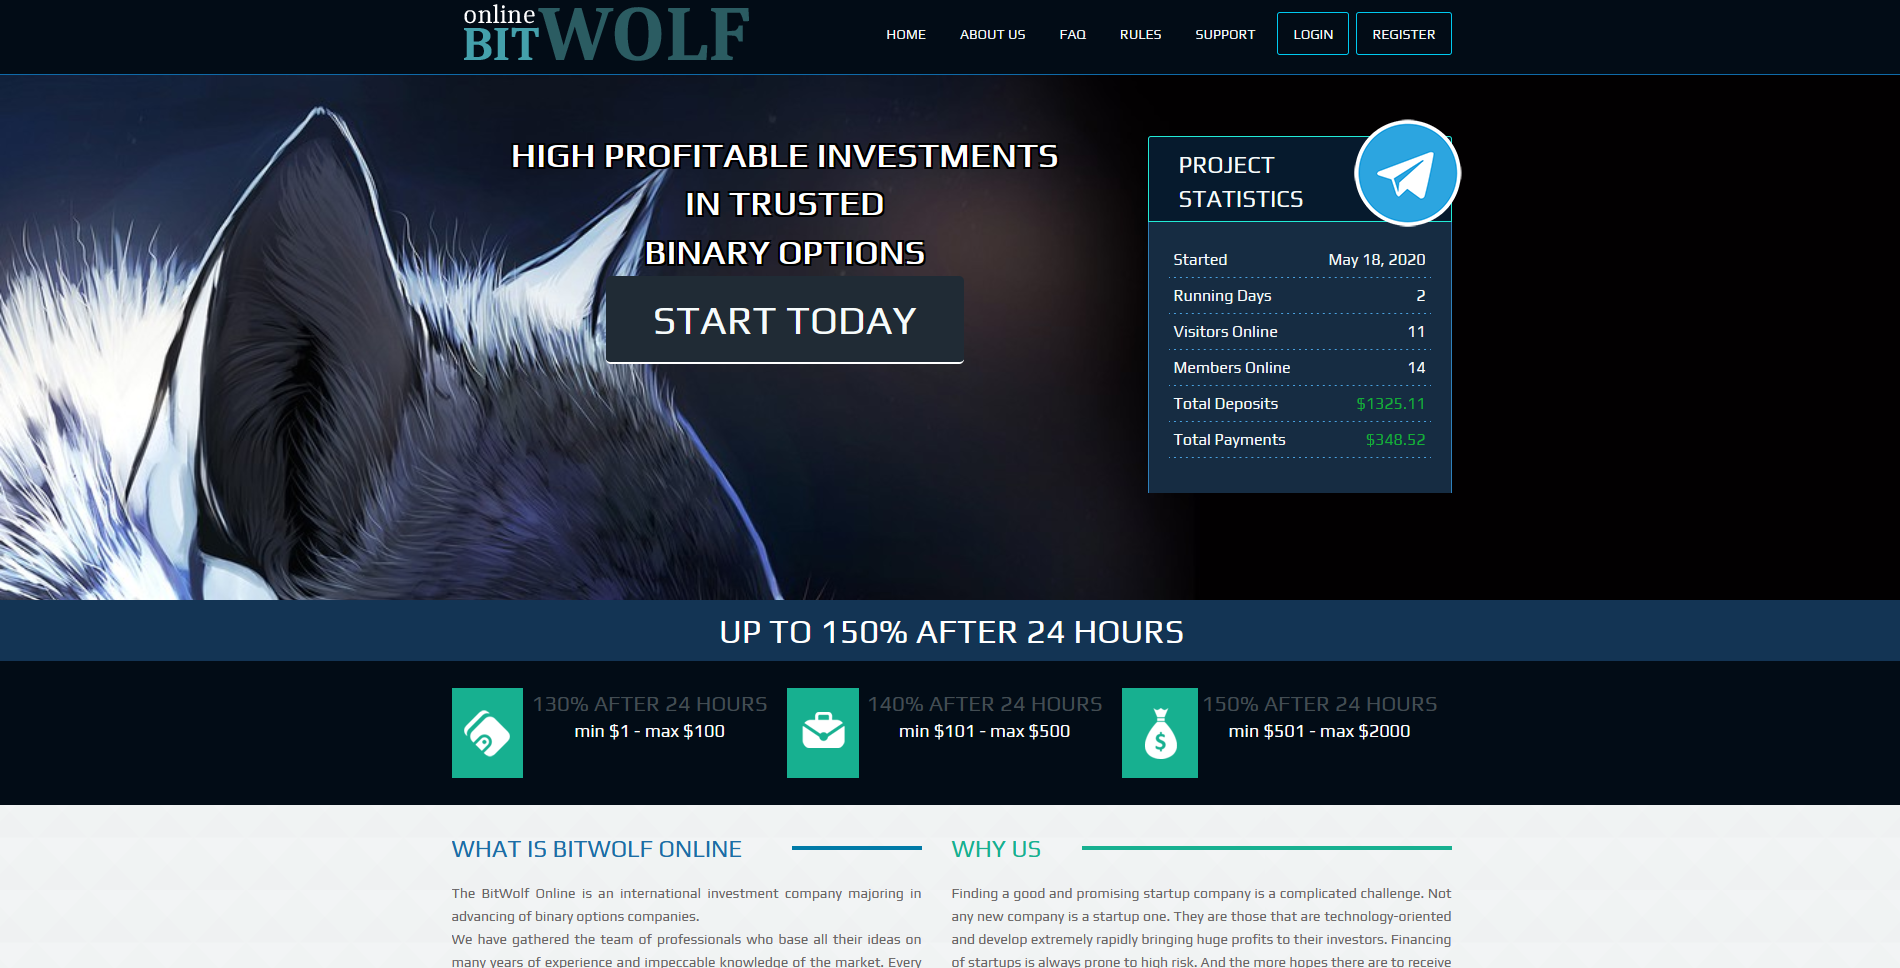 BitWolf